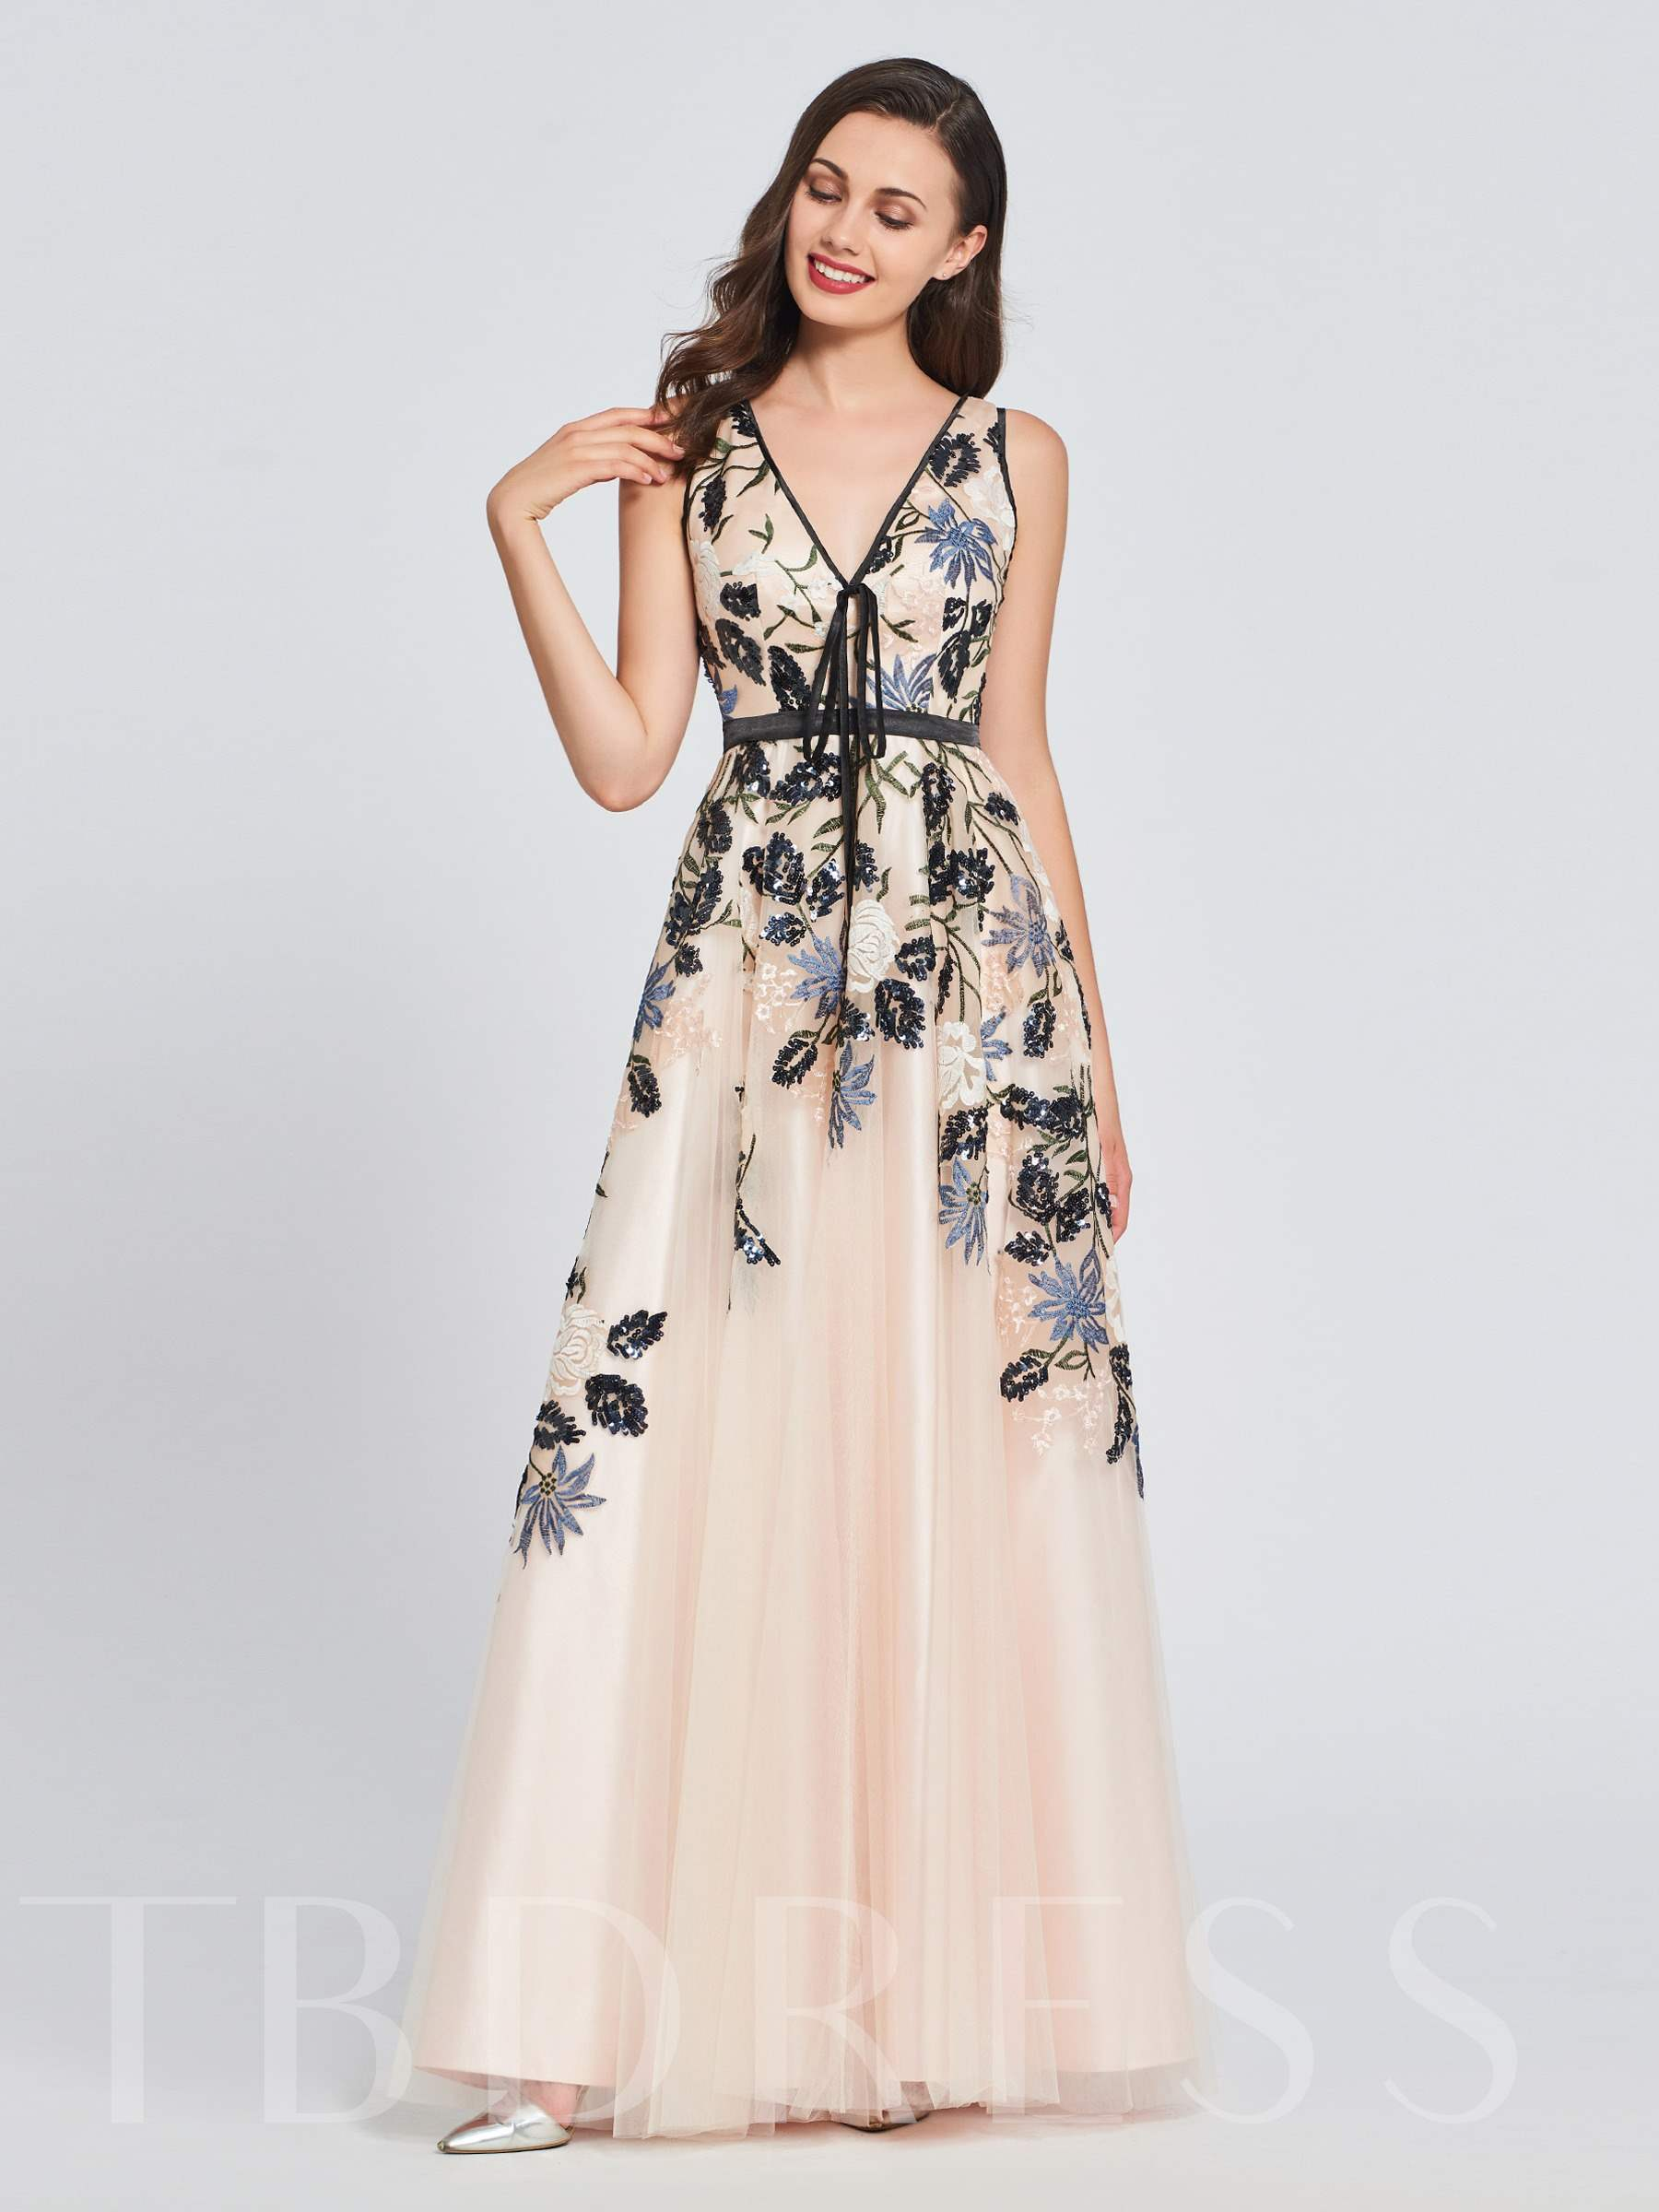 Buy A-Line V-Neck Appliques Embroidery Prom Dress, Spring,Summer,Fall,Winter, 13397998 for $169.99 in TBDress store